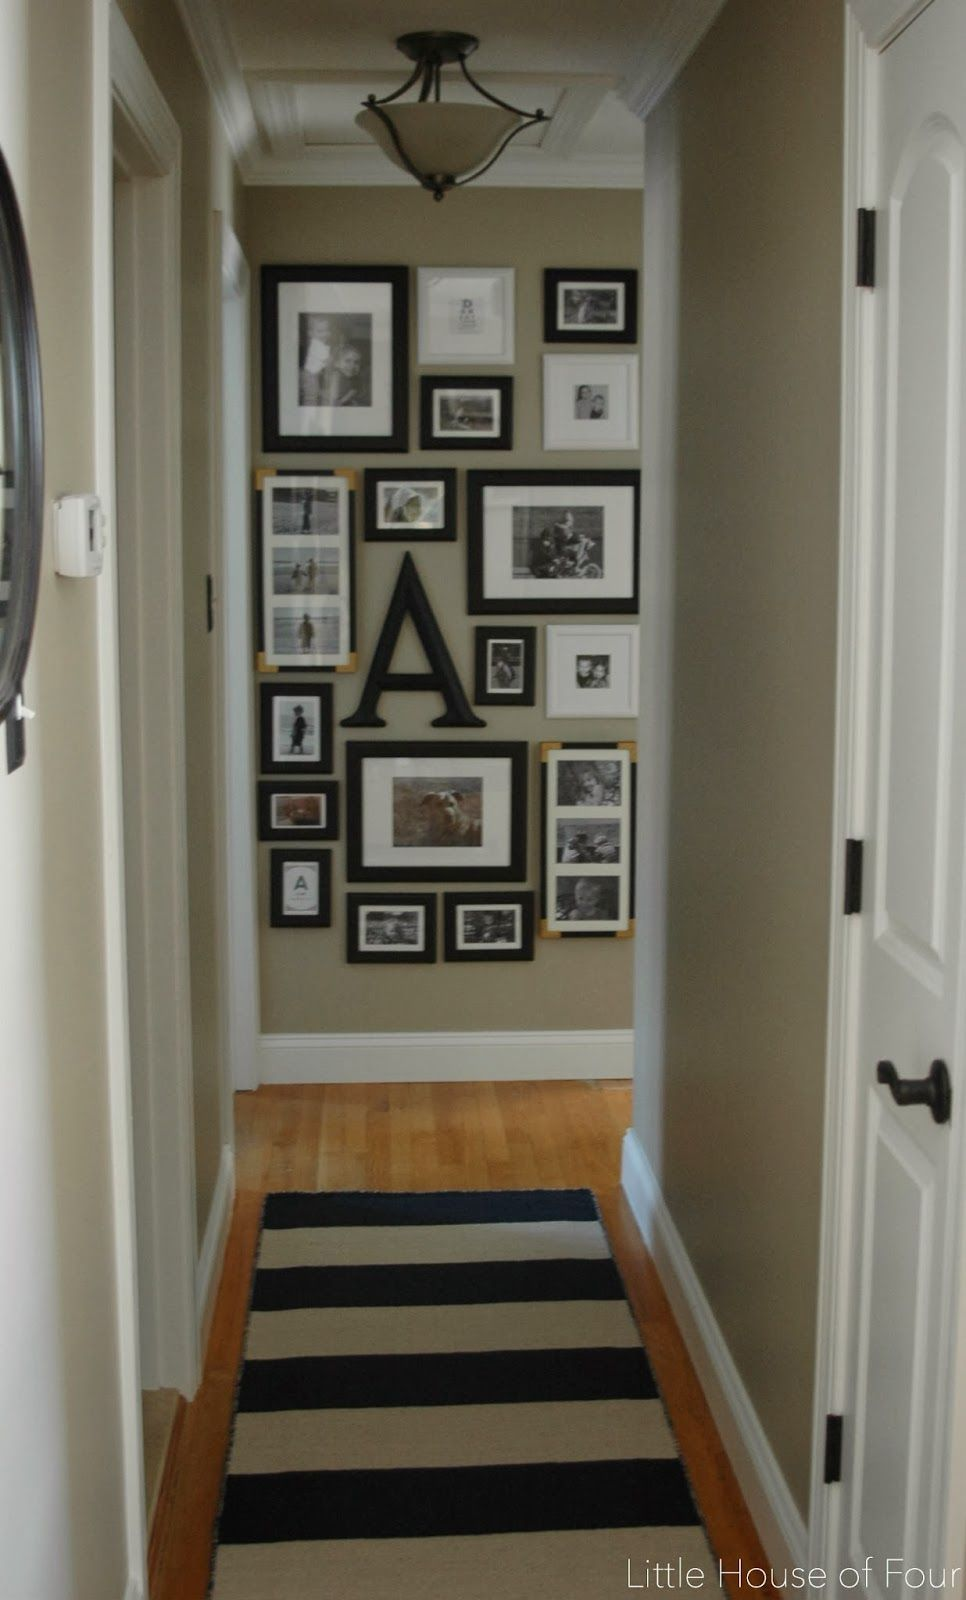 New hallway rug and gallery wall...